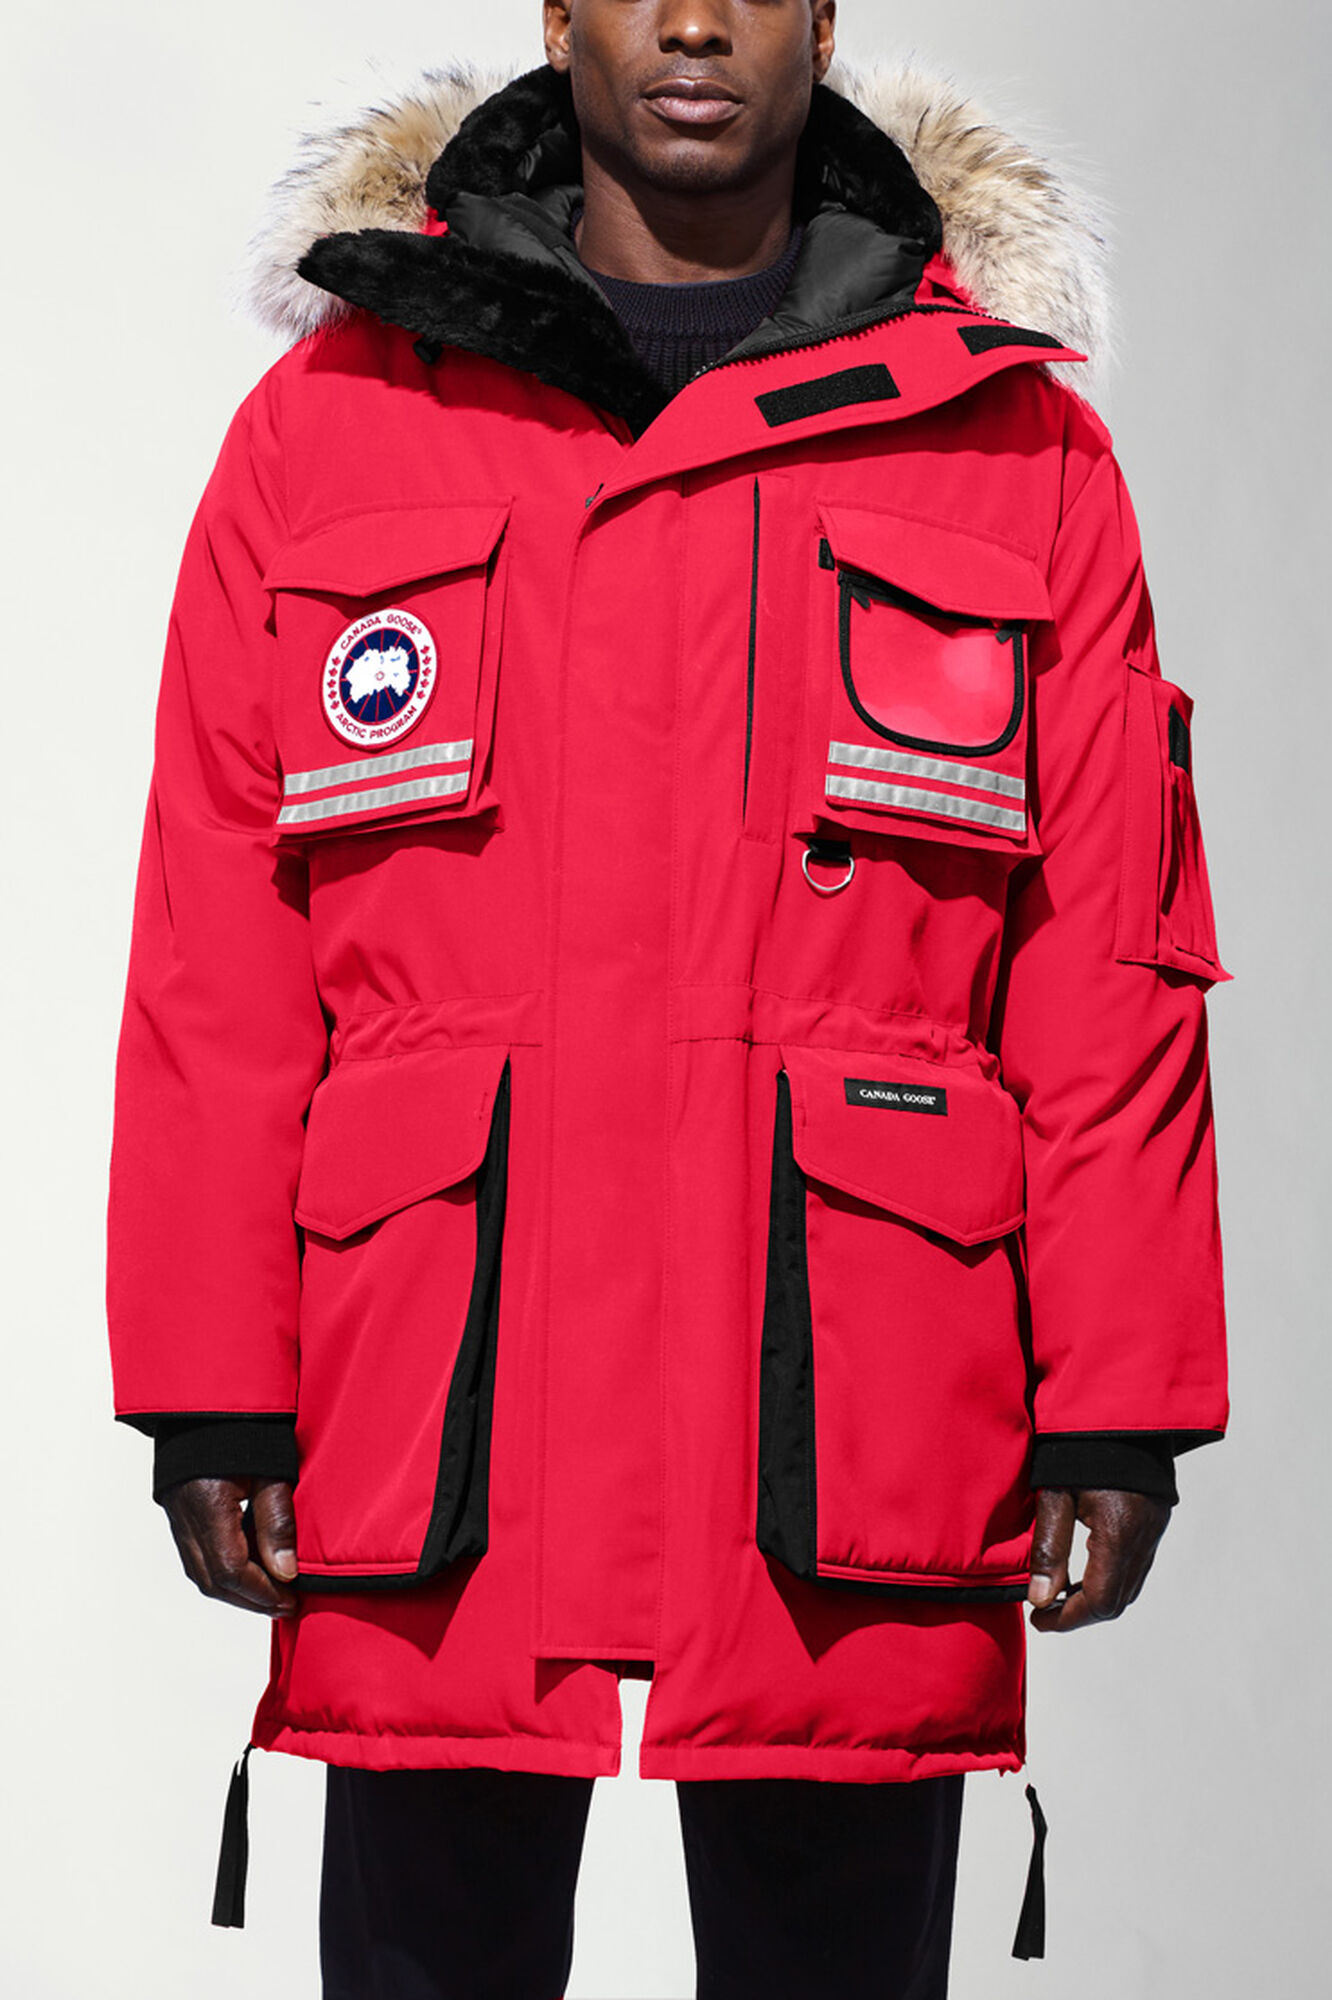 Canada Goose victoria parka online authentic - Men's Arctic Program Snow Mantra Parka | Canada Goose?